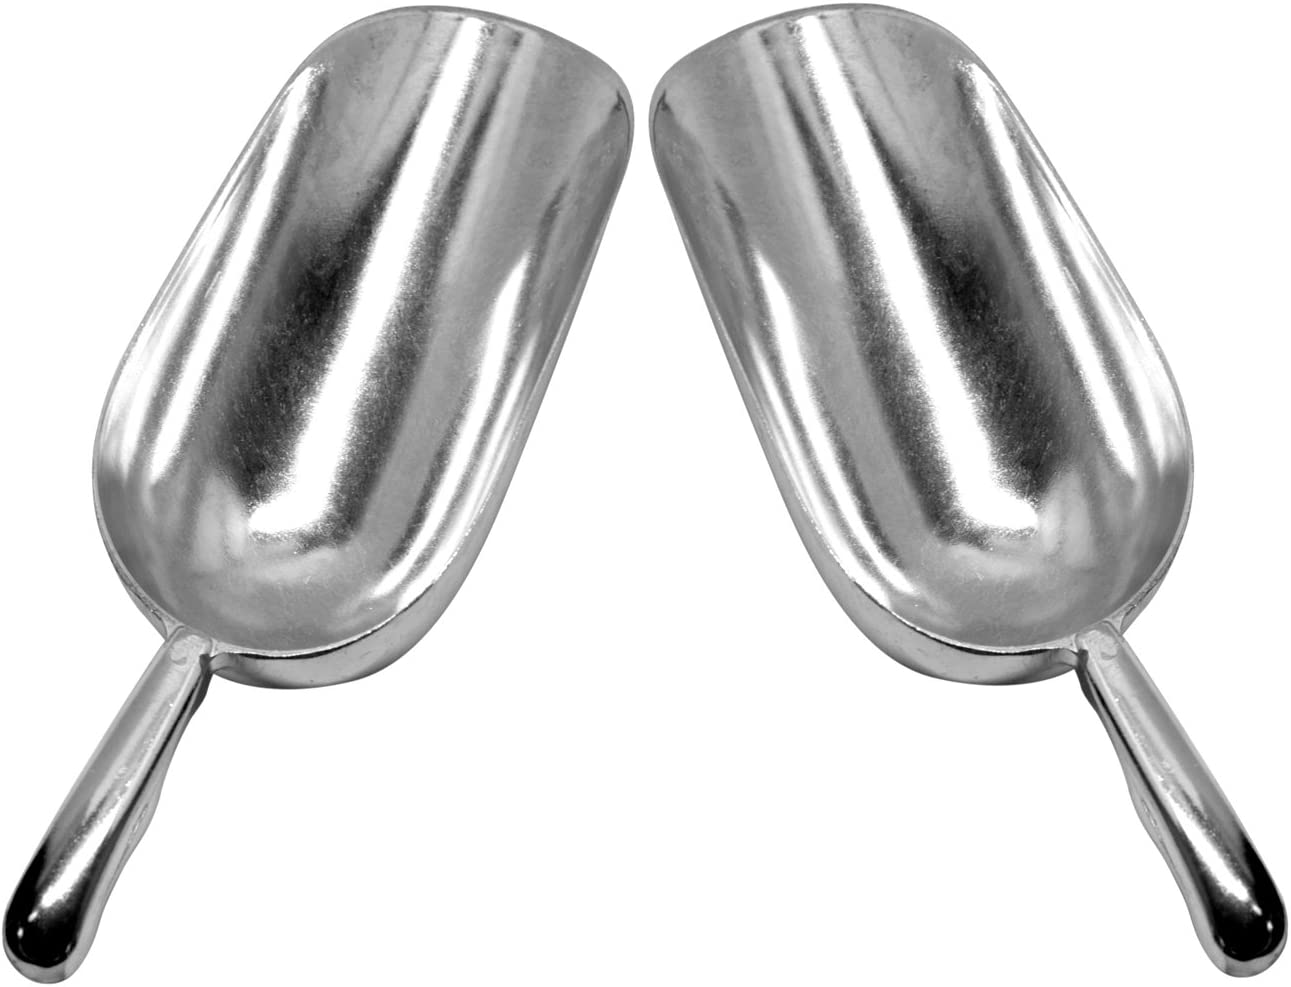 Set of 2 Large (24 Oz.) BonBon Aluminum Ice Scoop, Dry Goods Bar Scooper High Grade Commercial Scoop